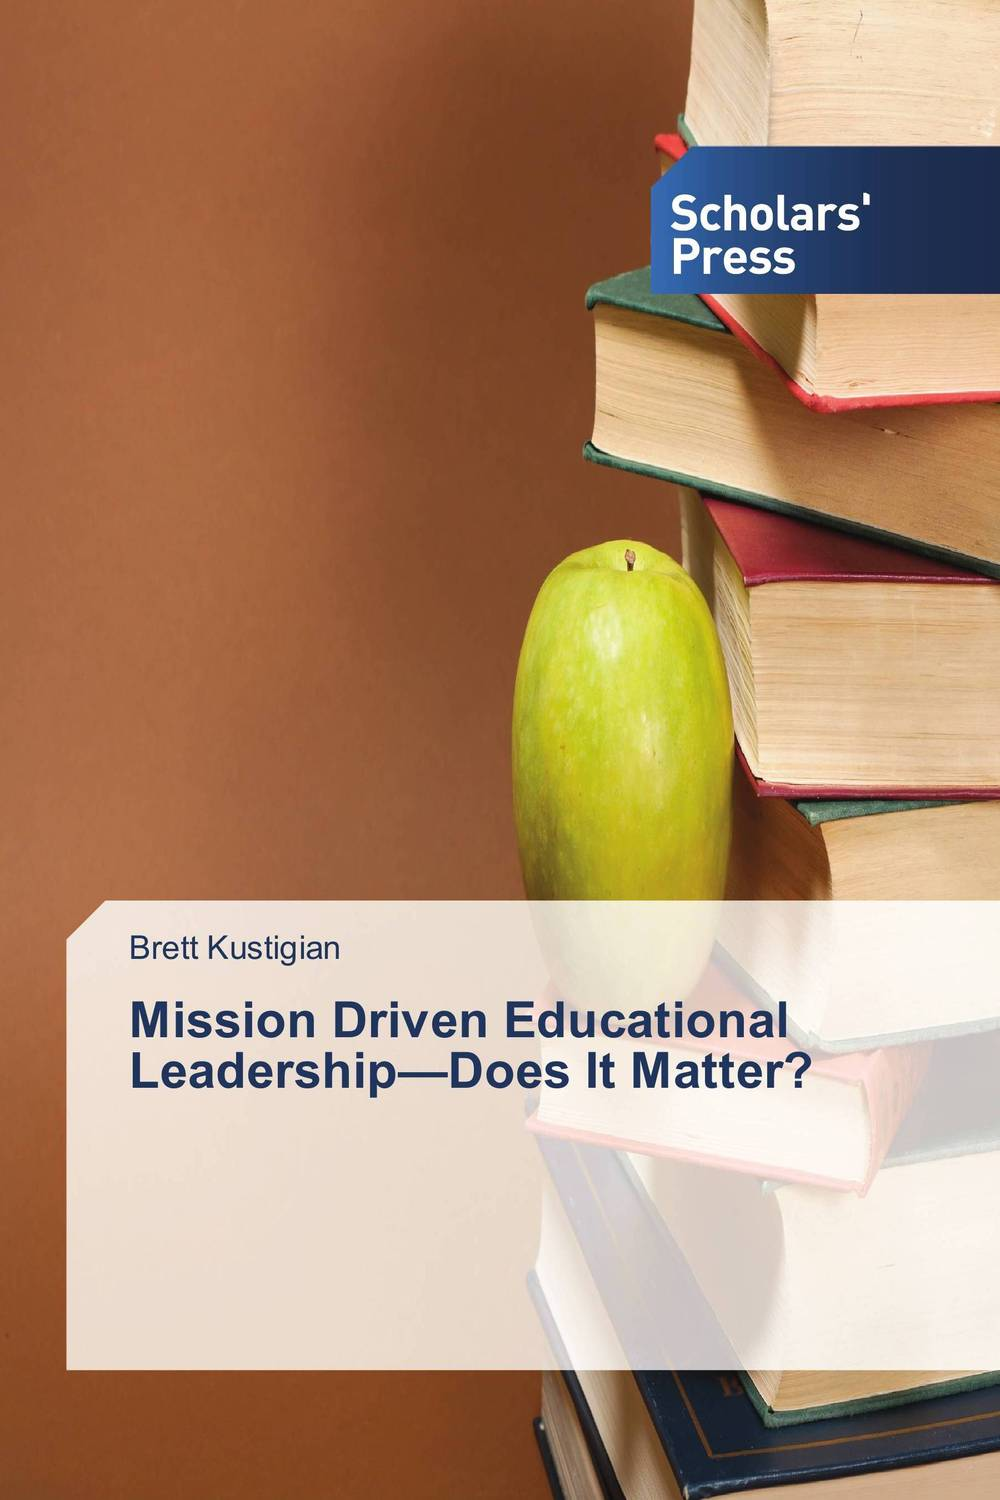 Mission Driven Educational Leadership—Does It Matter? driven to distraction